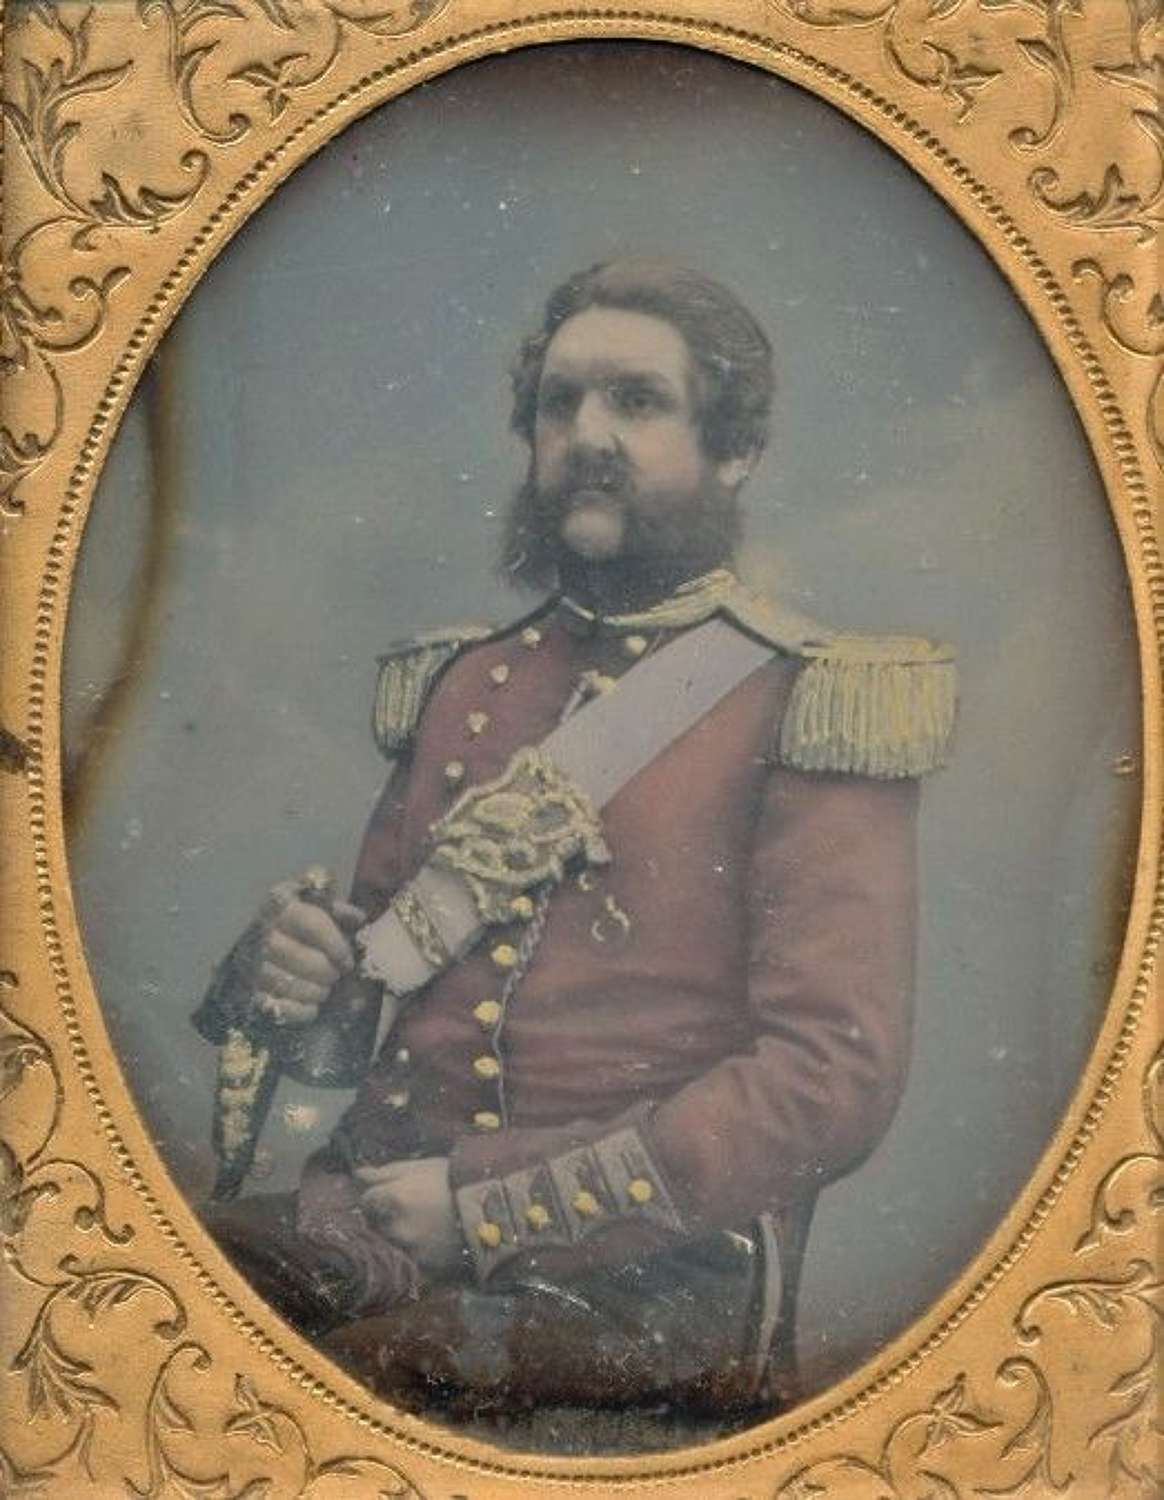 Hand Tinted 1/9 Plate Daguerreotype of a High-Ranking British Military